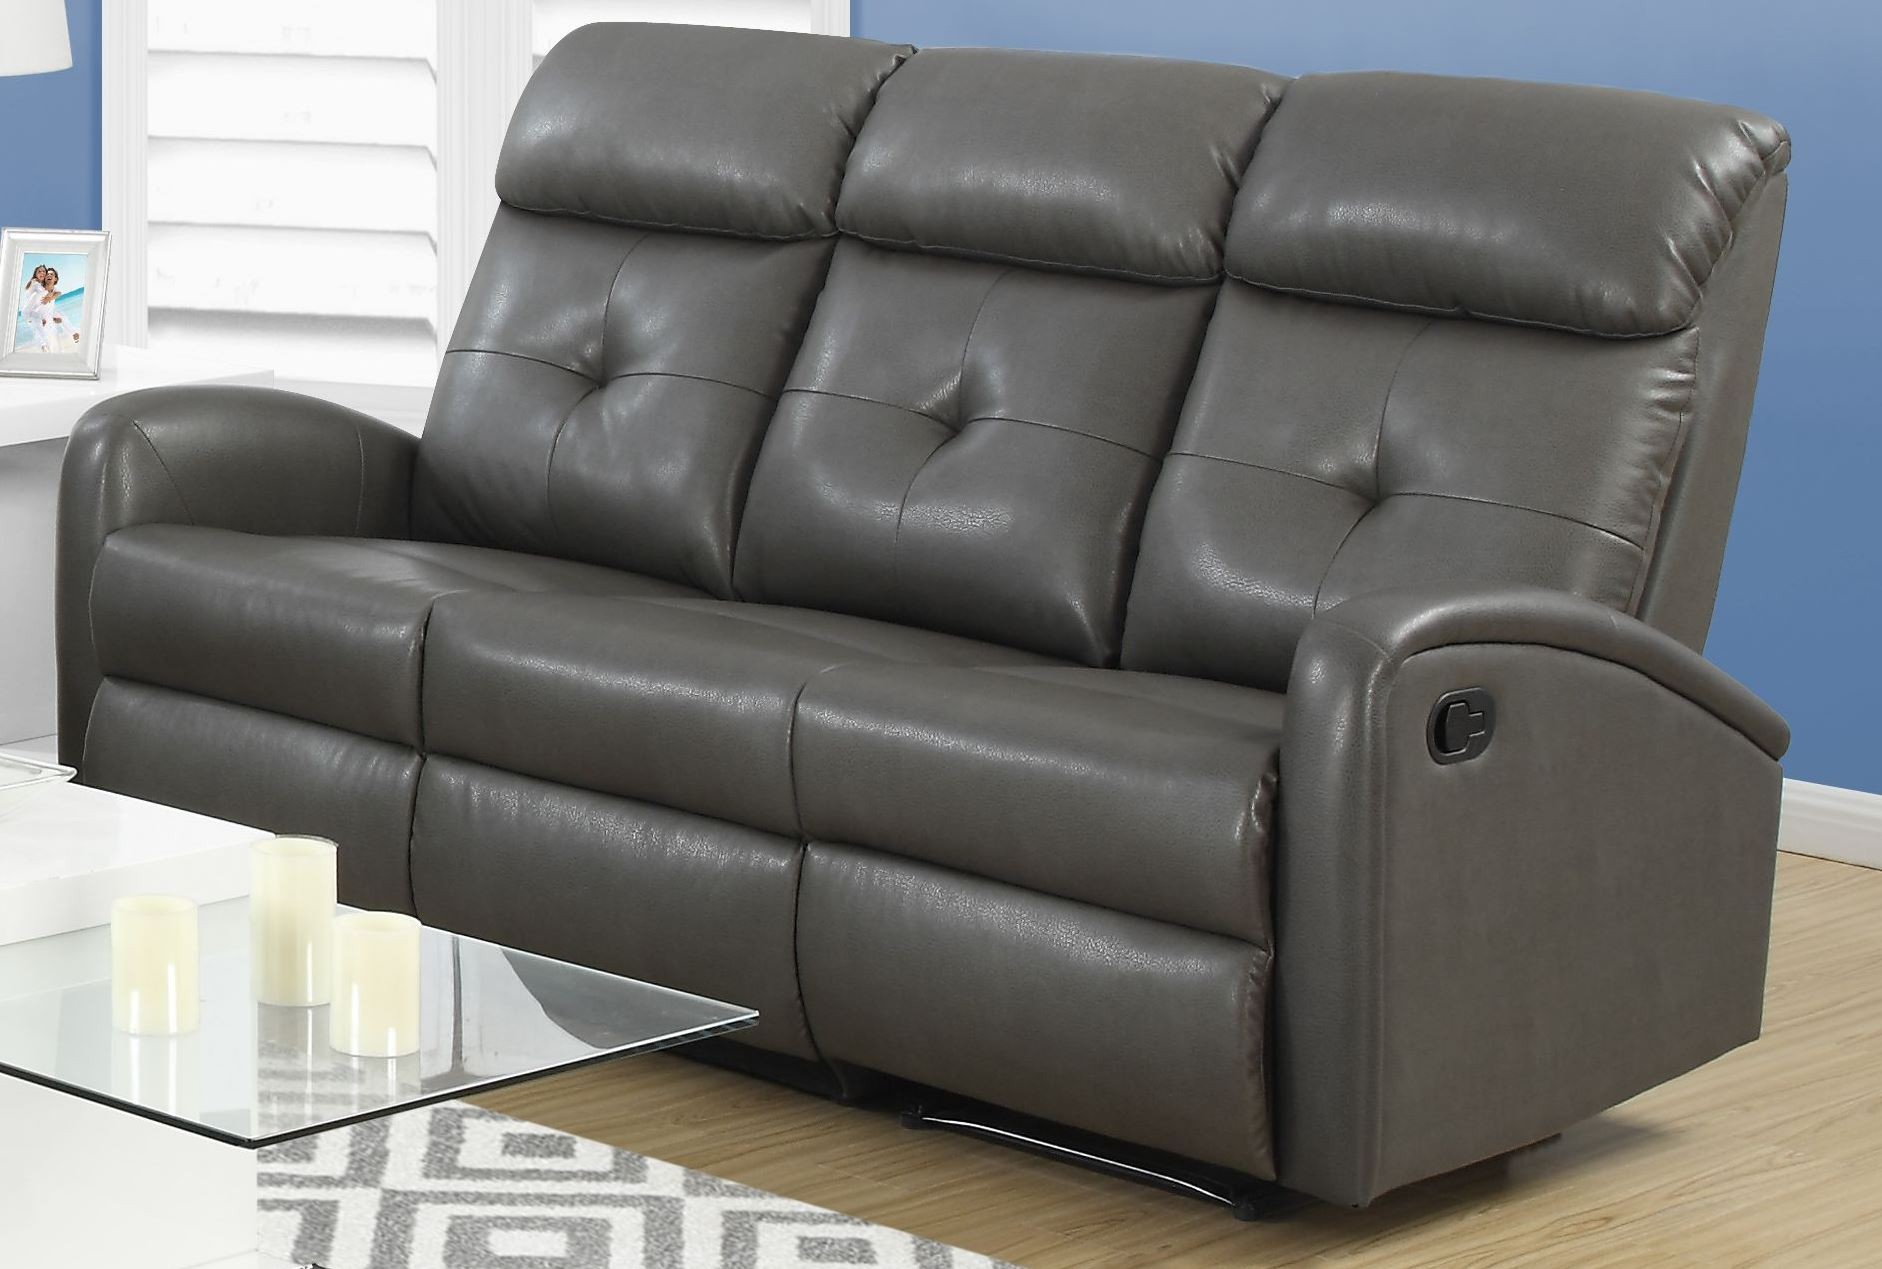 88gy 3 Charcoal Grey Bonded Leather Reclining Sofa 88gy 3